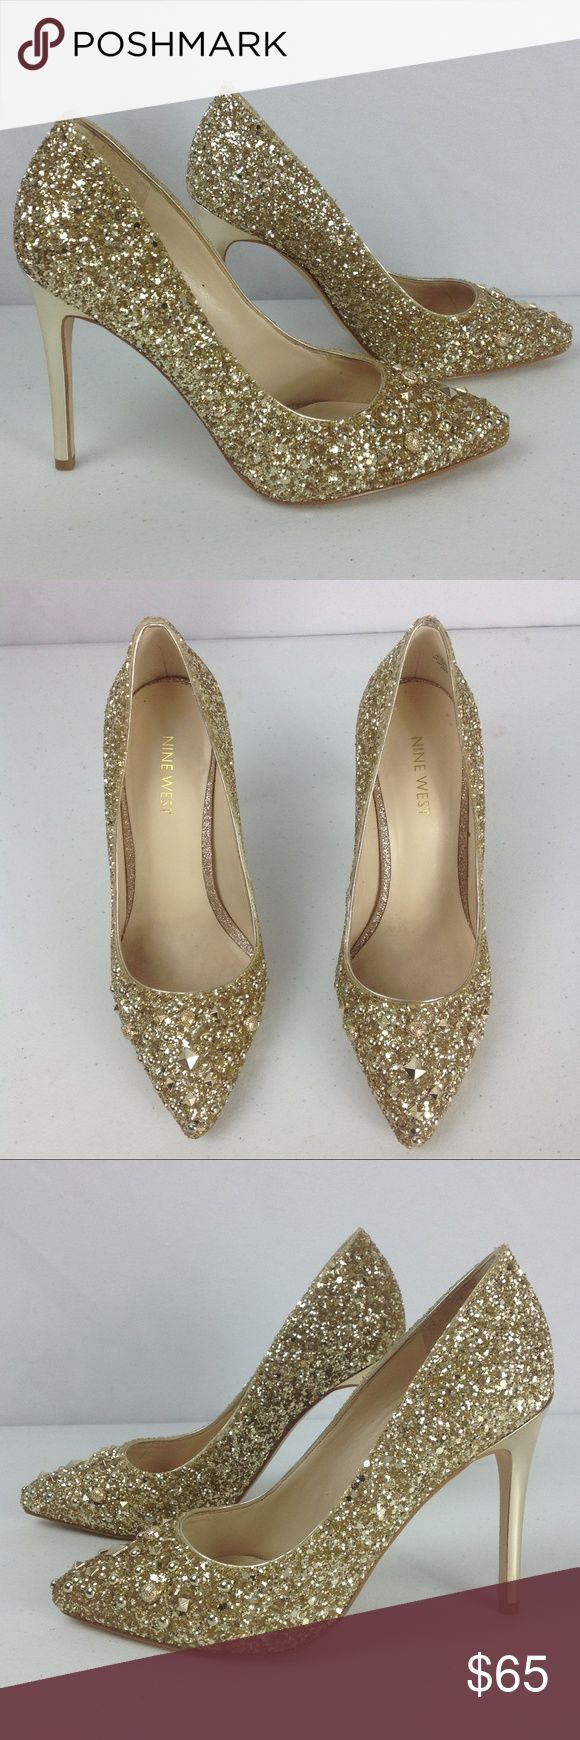 "Nine West Gold Elenah Synthetic Dress Pumps SZ 7M The most wear on these is in between the 2 shoes where they would rub (missing sparkles). The backs are missing some minimal sparkles as well. The heels show very minimal wear/scuffing!  The heels are just over 4 inches tall (not quite 4.25 inches). ""Well, Tamatoa hasn't always been this glam I was a drab little crab once Now I know I can be happy as a clam Because I'm beautiful, baby"" (from Moana) Nine West Shoes Heels"